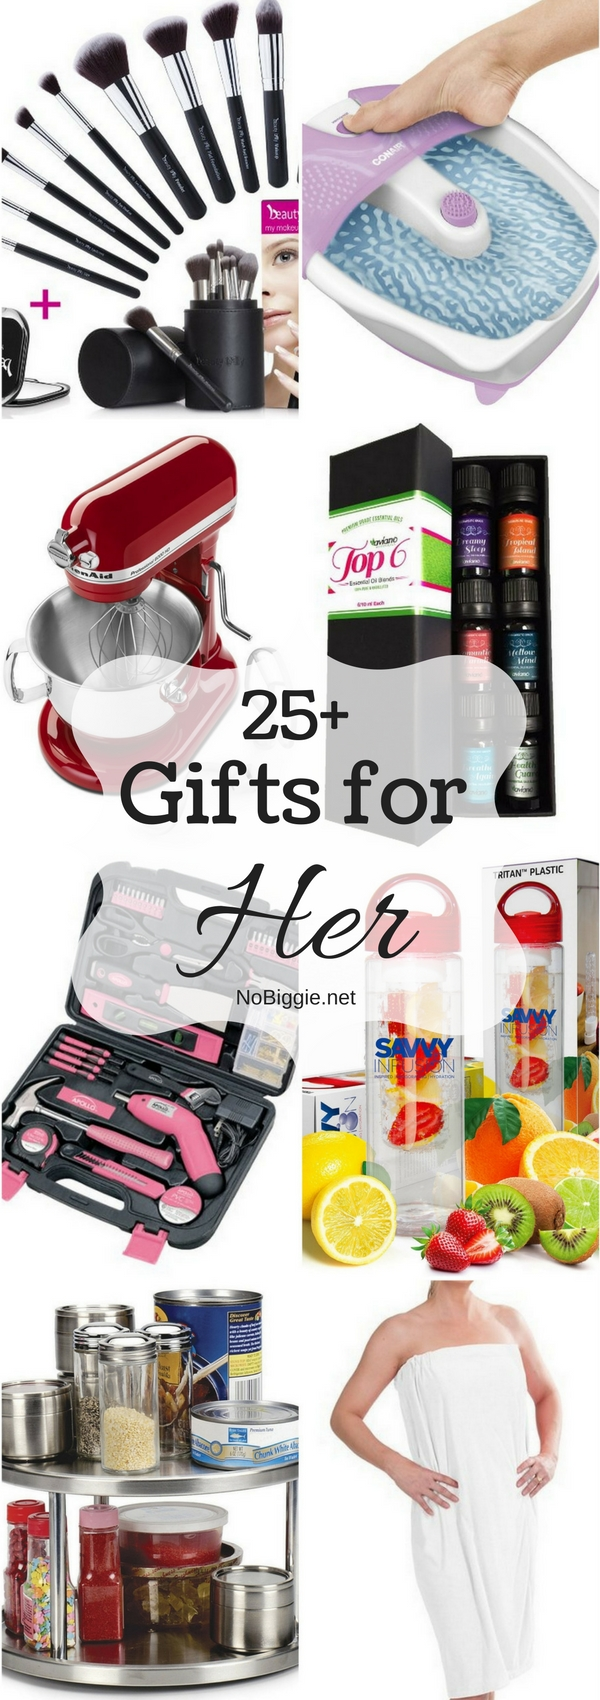 25+ Gifts for Her | NoBiggie.net